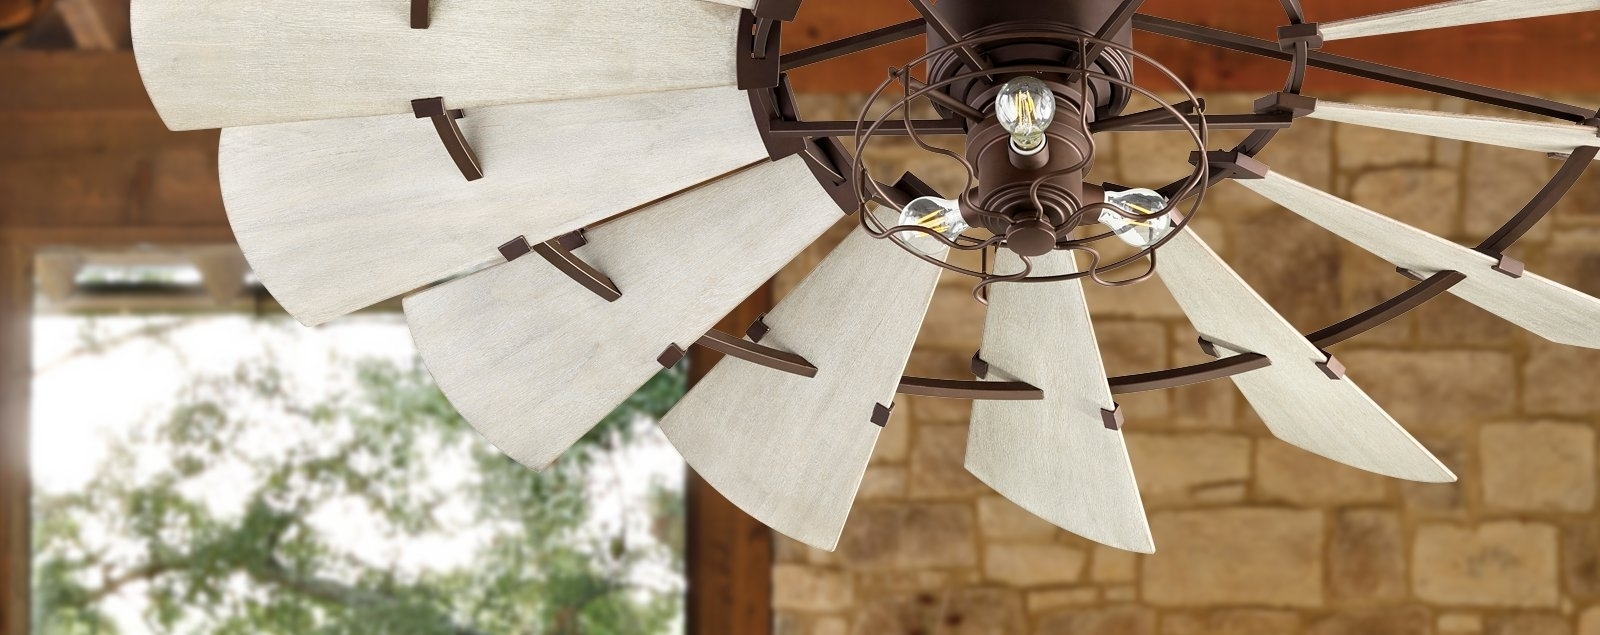 Outdoor Windmill Ceiling Fans With Light Regarding Latest Windmill Ceiling Fans (View 14 of 20)